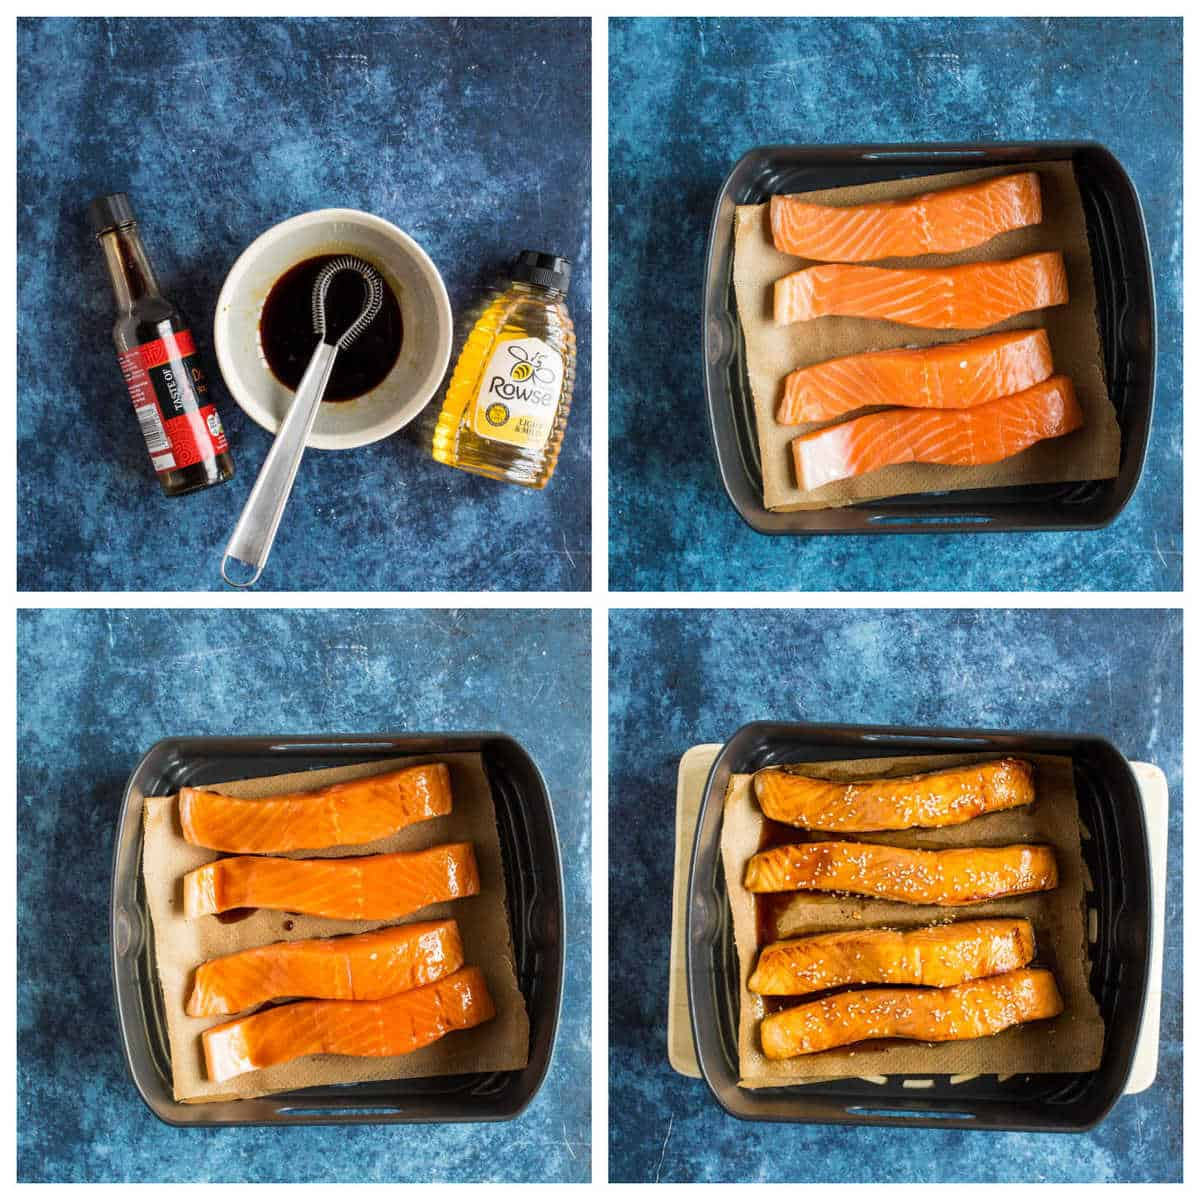 Step by step photo instructions collage for making air fryer salmon.